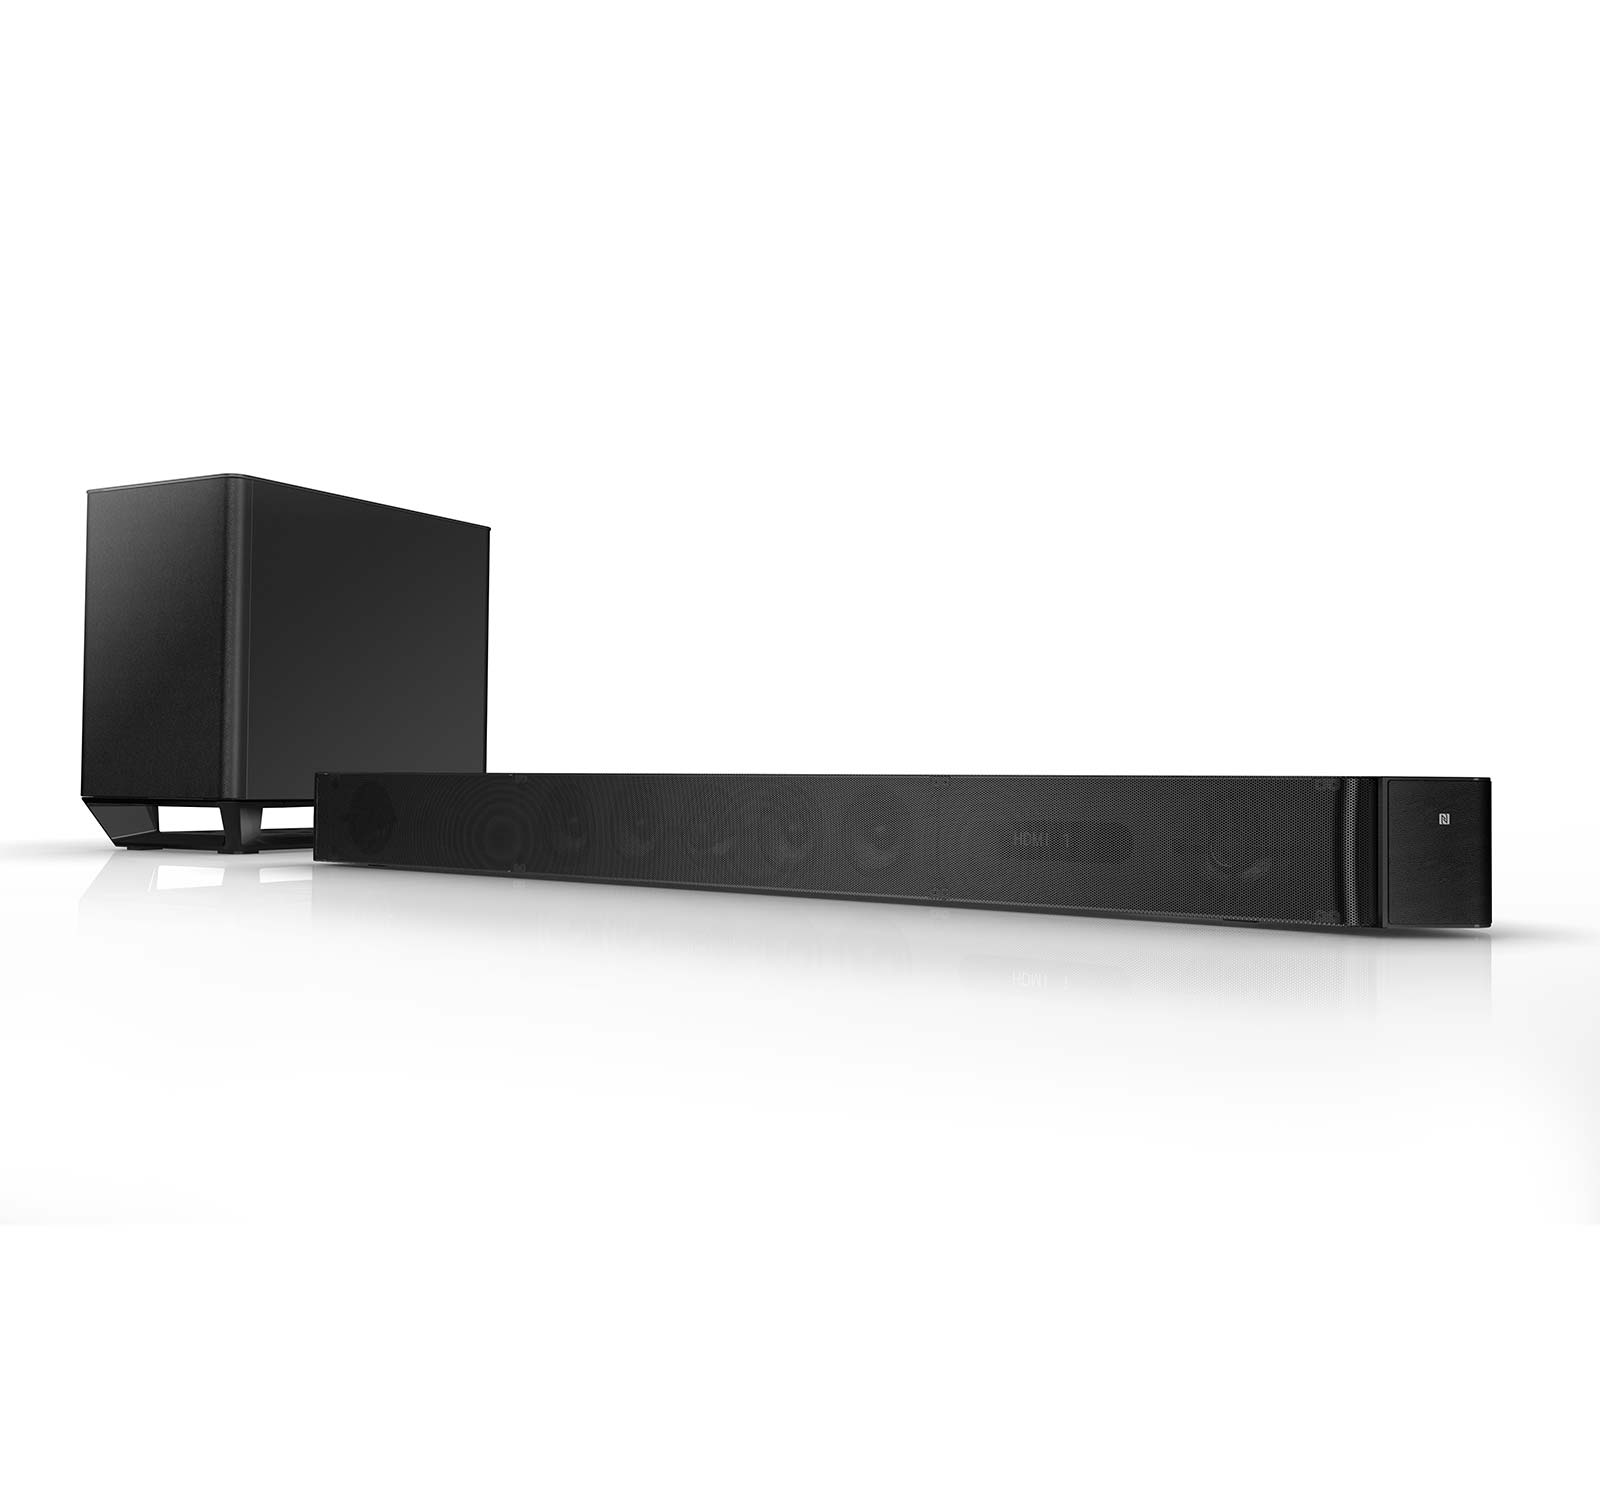 JBL Sony HT-ST9 - Soundbar w/ Wireless Subwoofer and Goog...